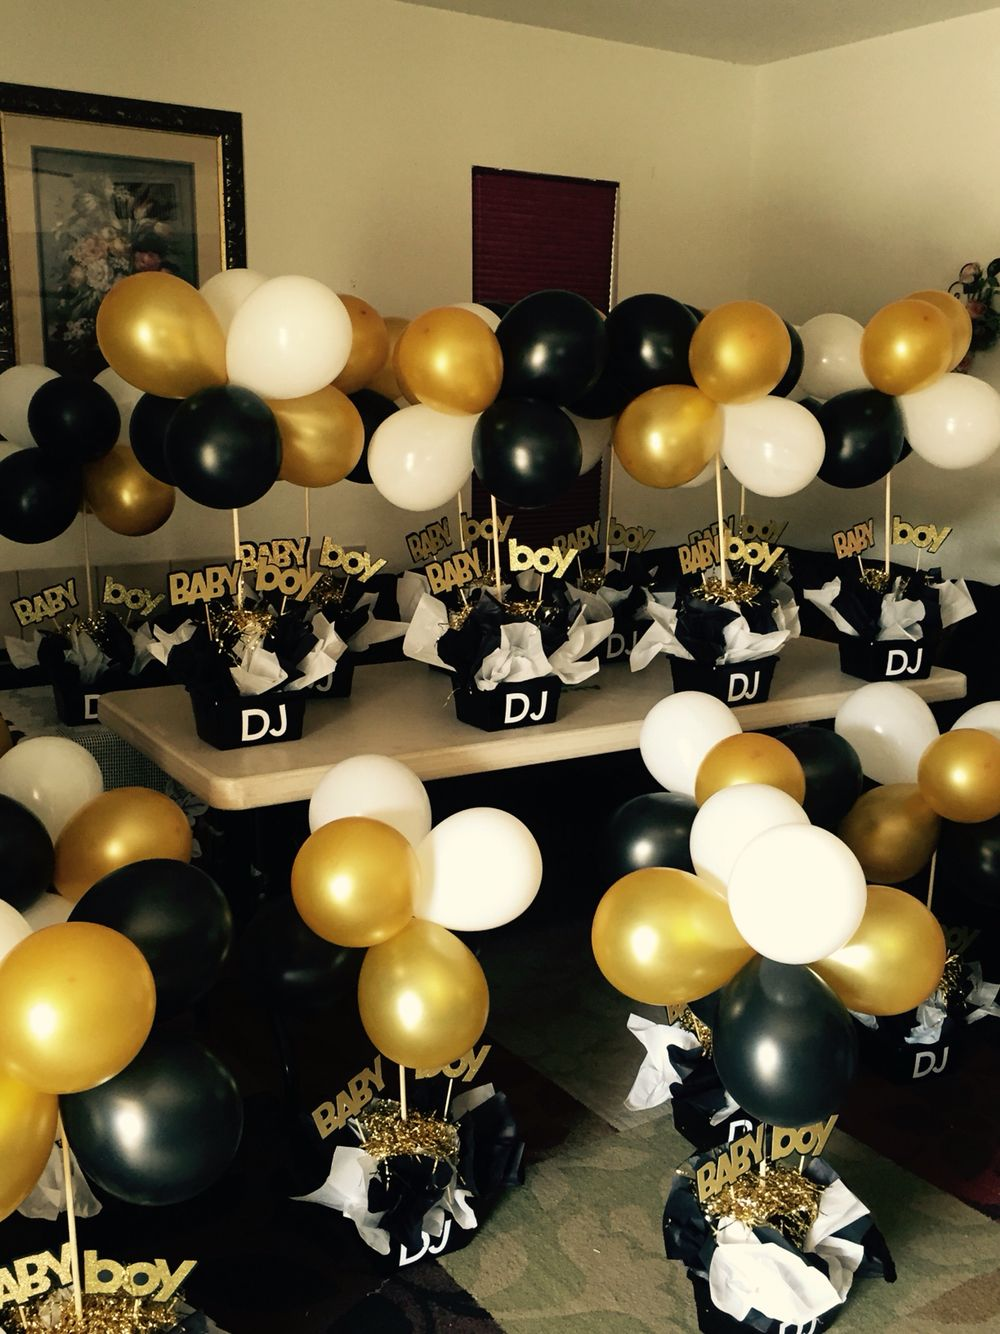 Black And Gold Babyshower Centerpieces Birthday Decorations For Men Gold Baby Showers Black And Gold Party Decorations